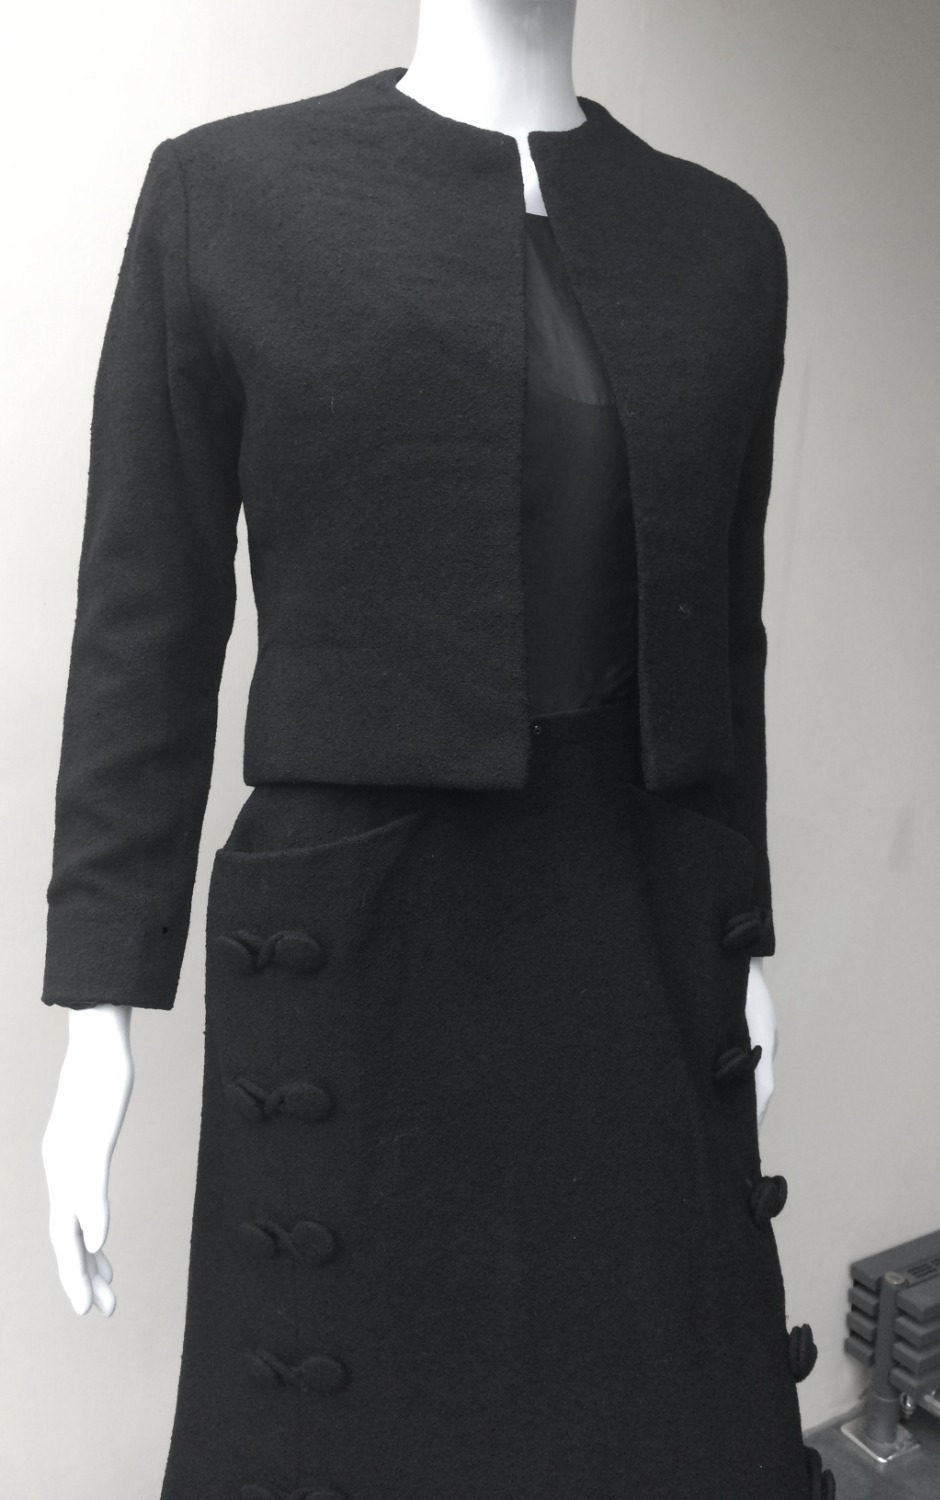 Dior Paris black skirt suit CU_edited